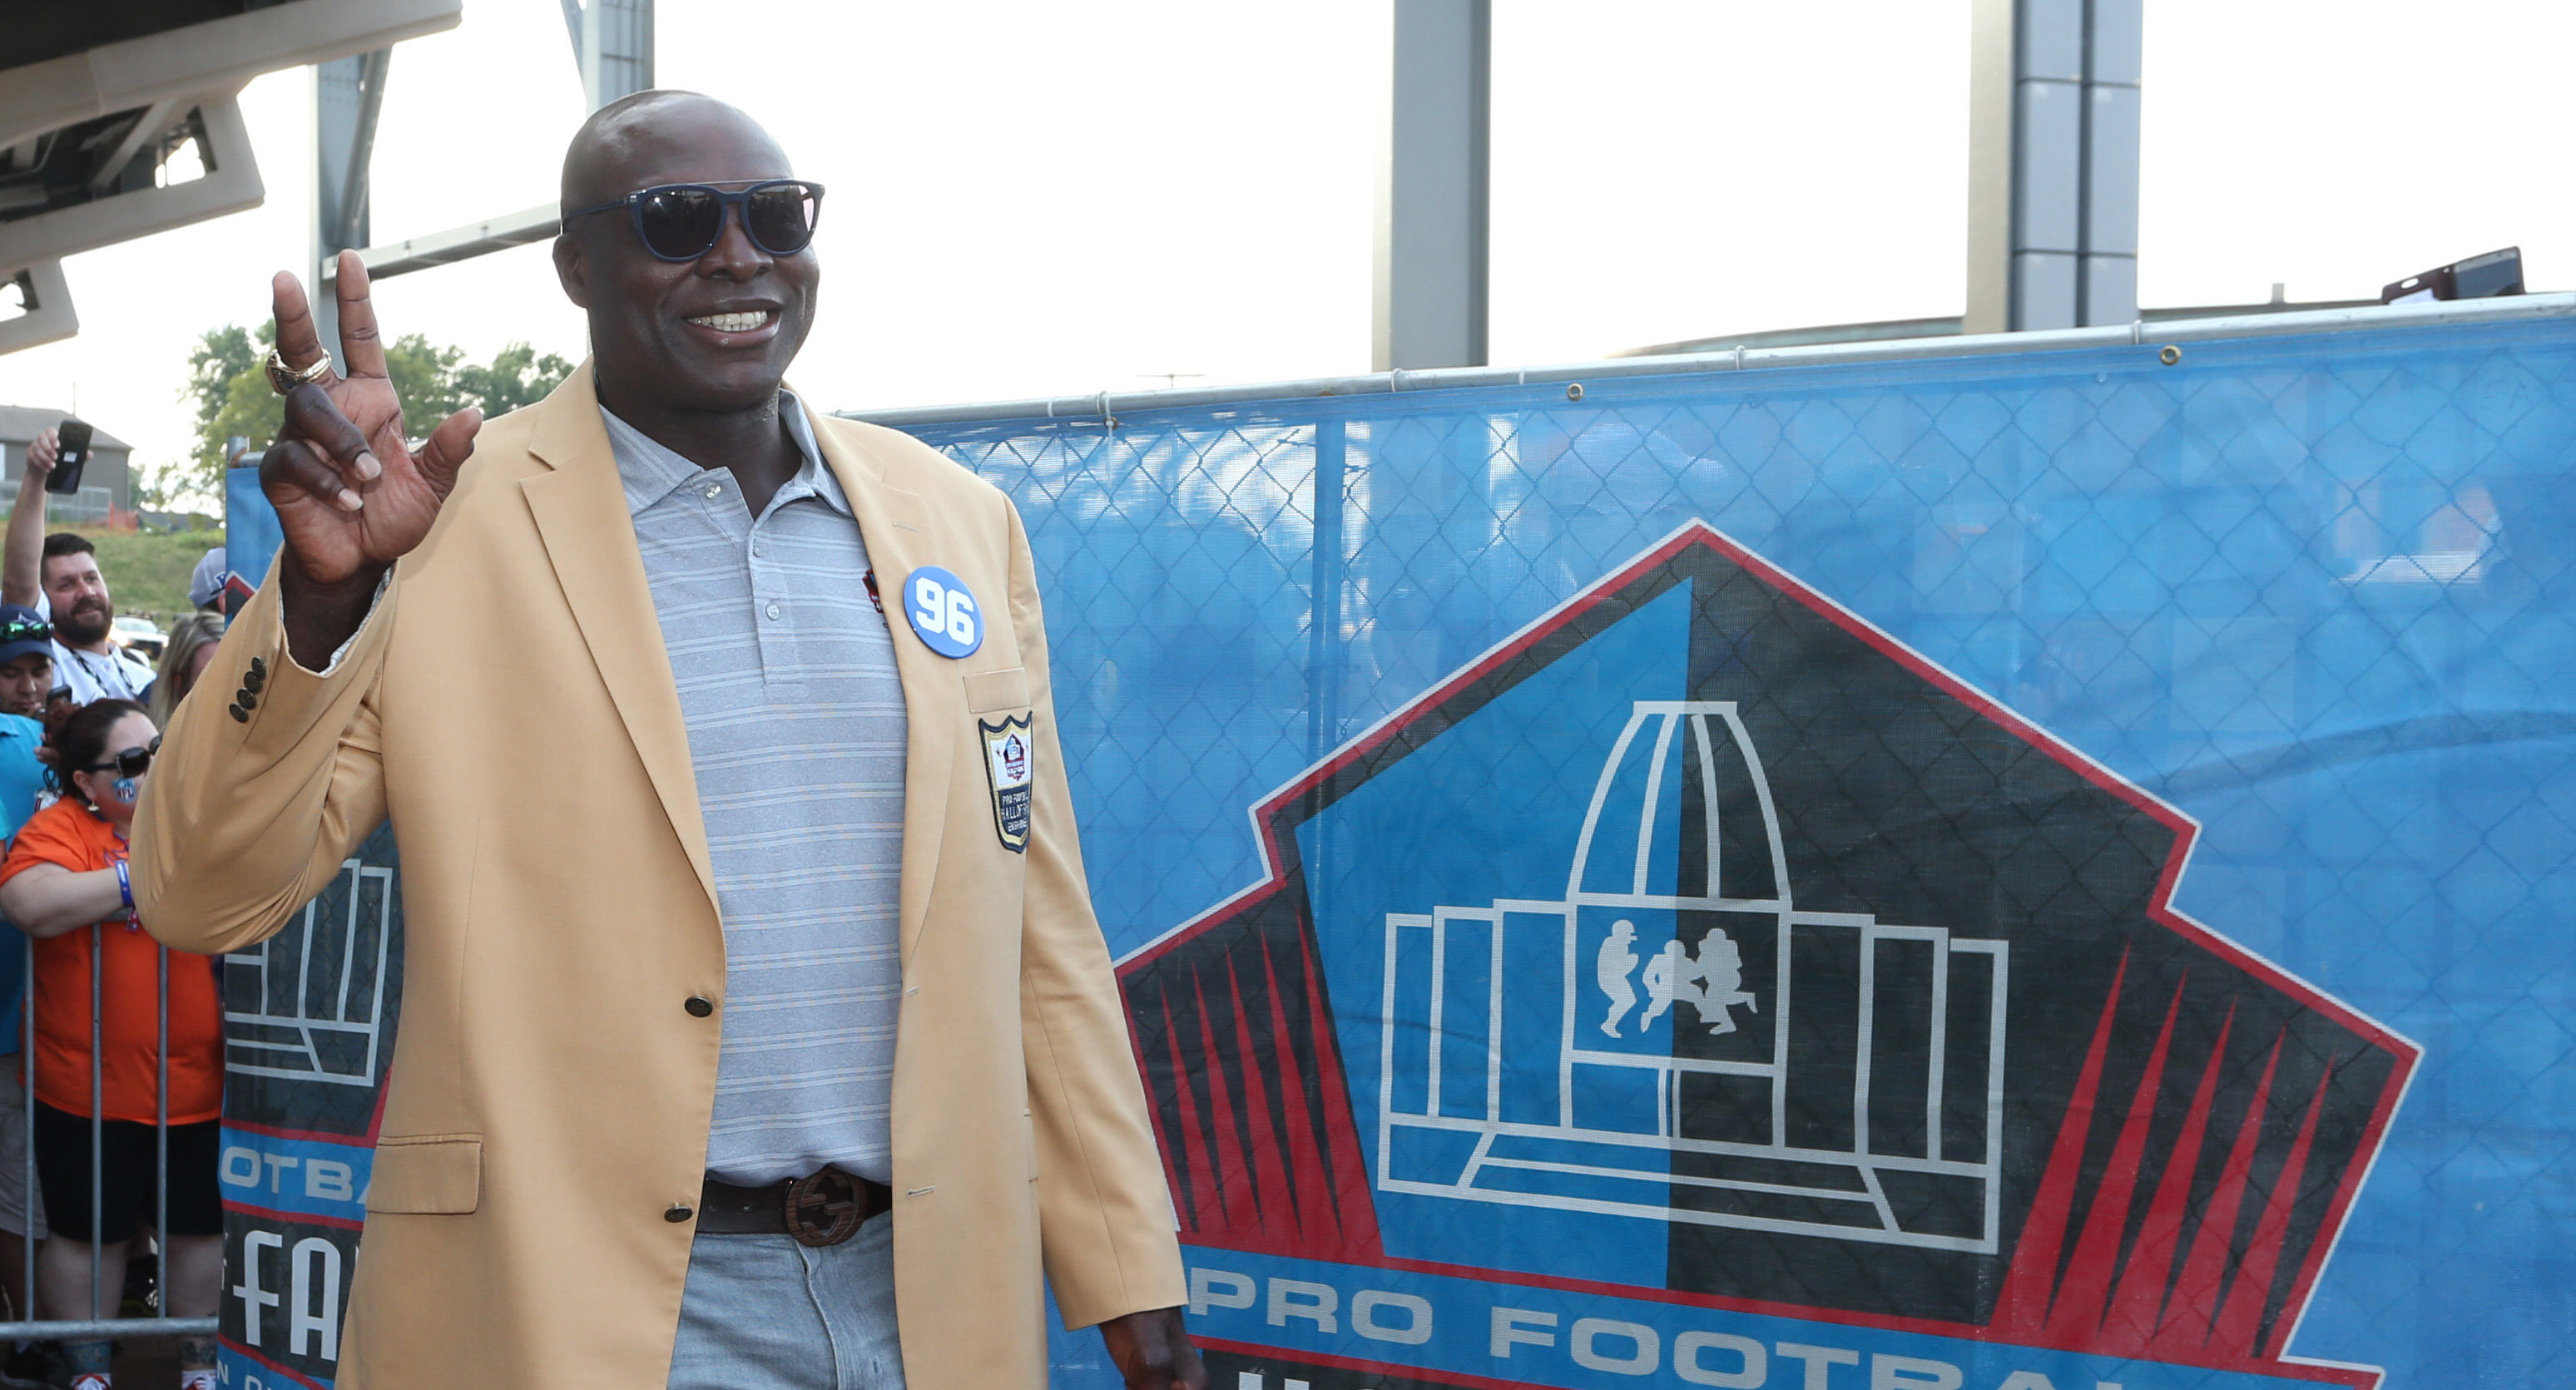 Buffalo Bills defensive end Bruce Smith arrives during the Professional Football HOF enshrinement ceremonies at the Tom Benson Hall of Fame Stadium.